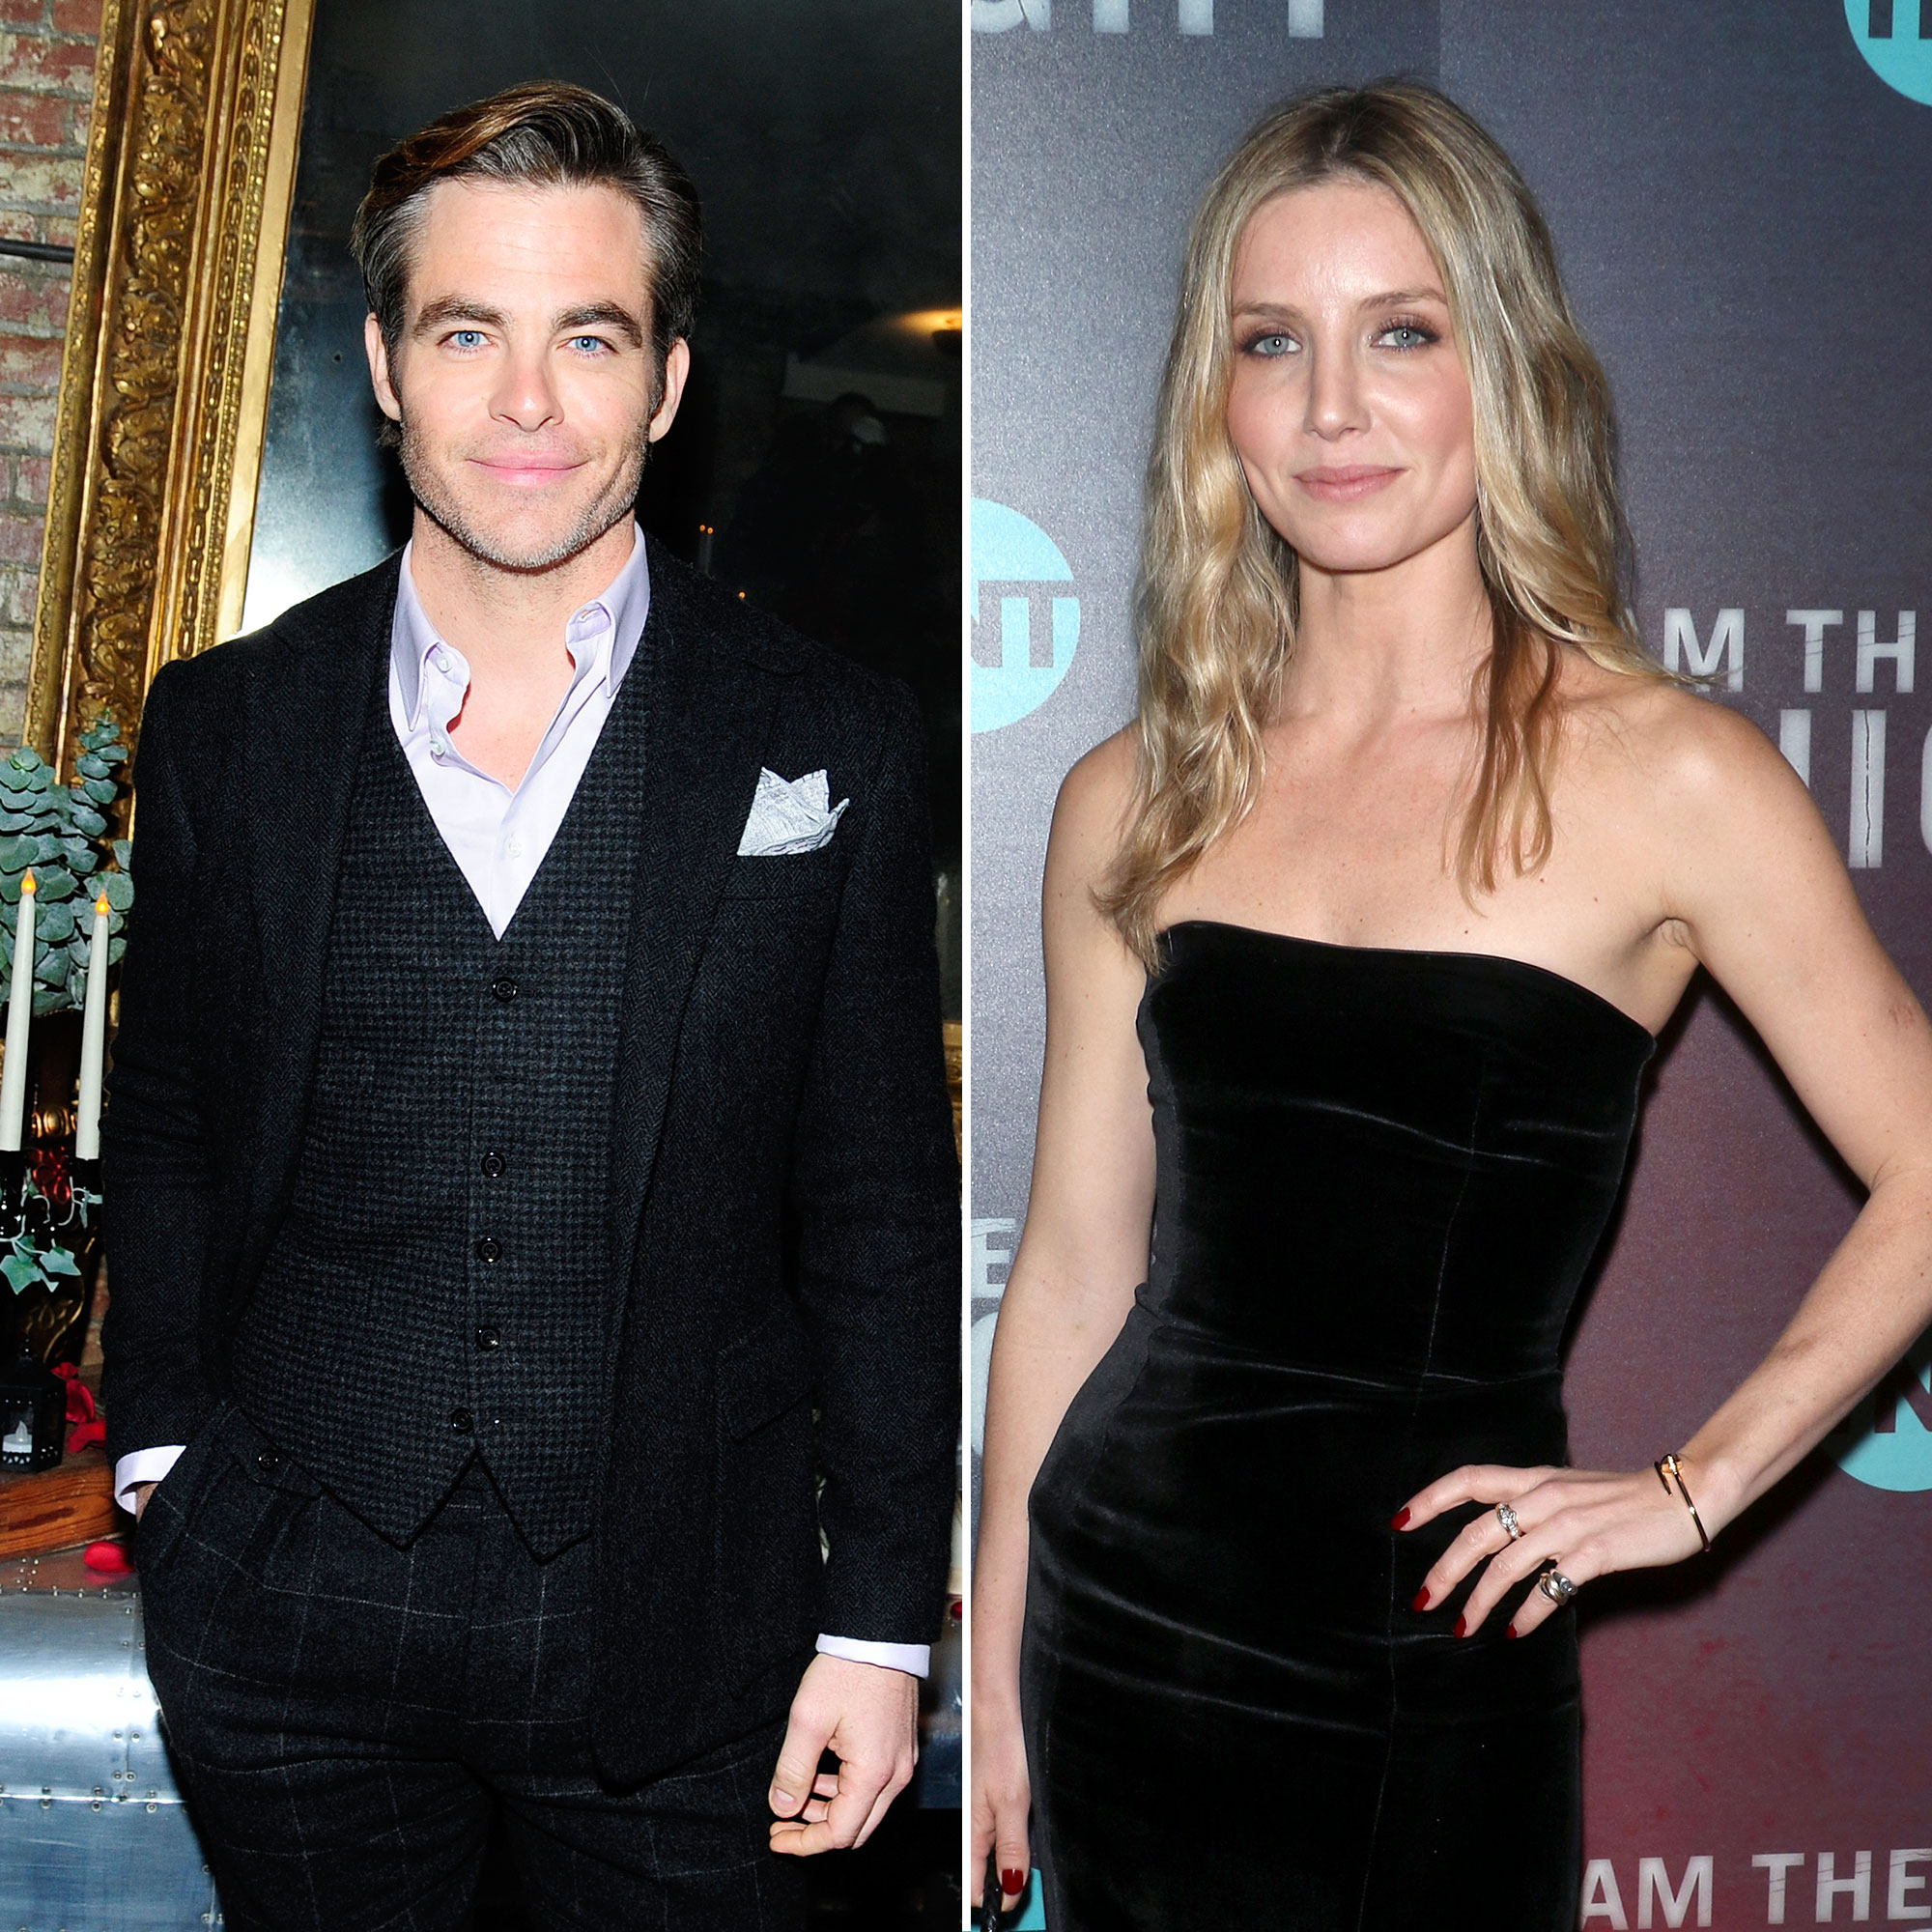 Chris Pine Annabelle Wallis Show Pda Look Very Cozy At